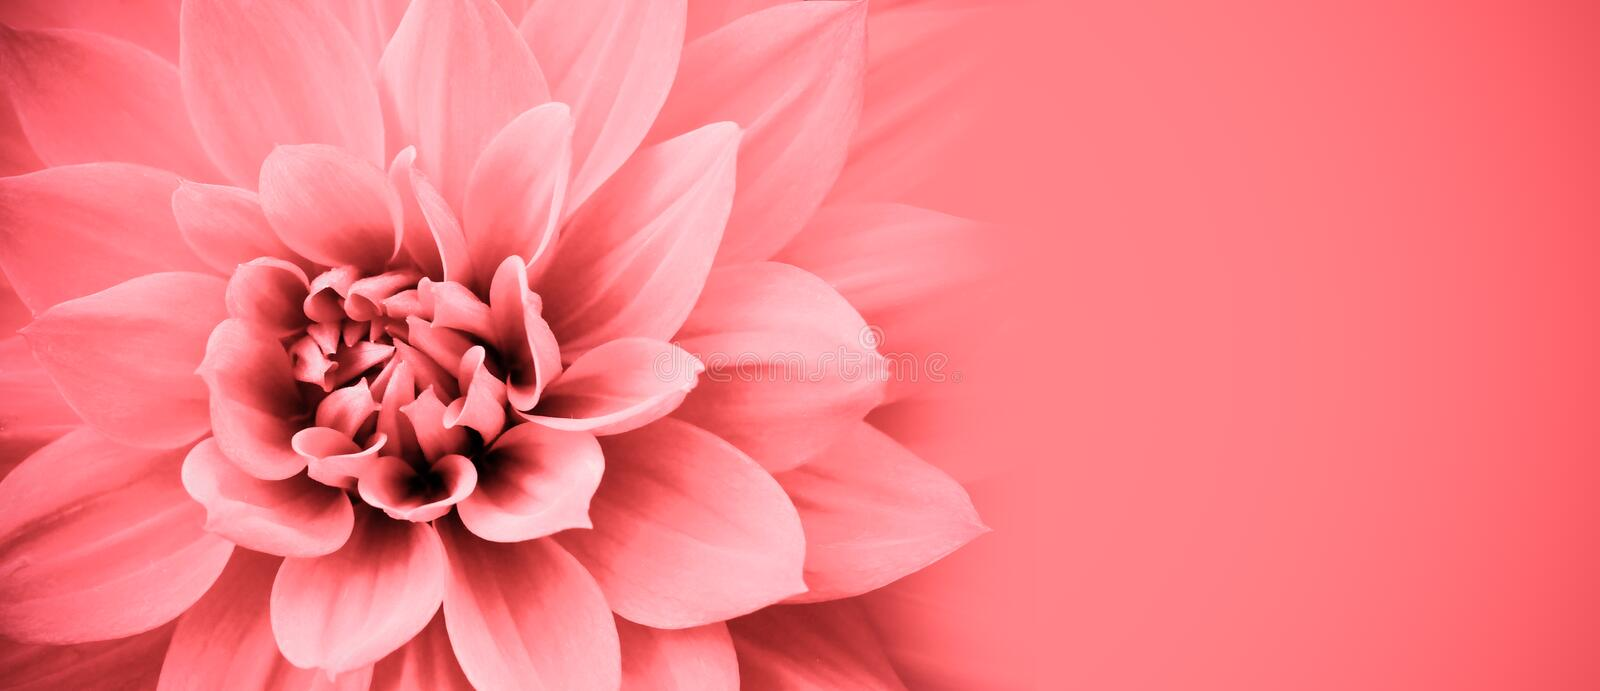 Pink dahlia flower details macro photo border frame with wide banner background for message. Wedding background. Pink dahlia flower details macro photo border stock photography